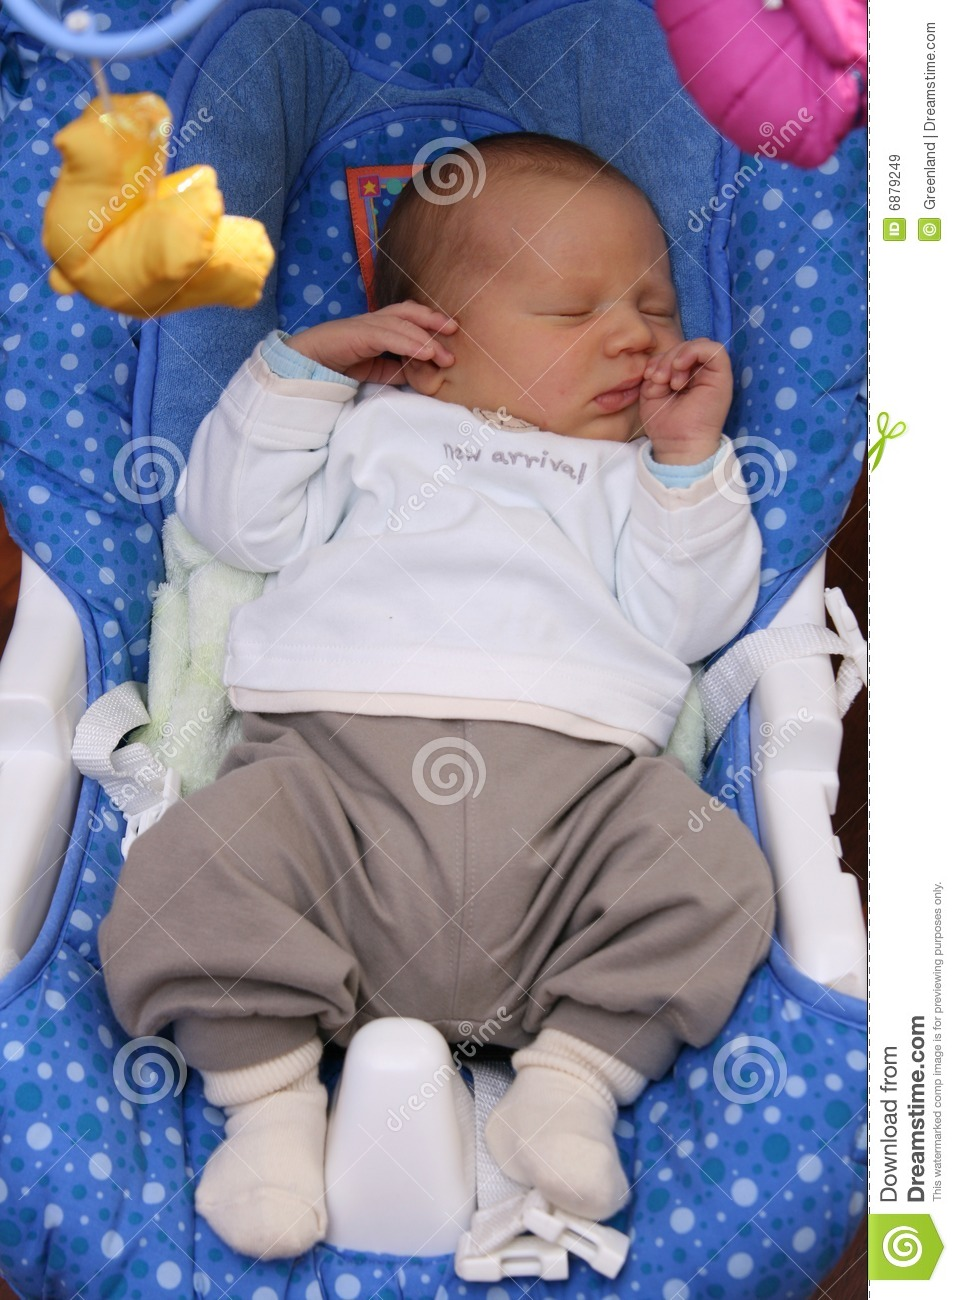 Newborn Baby Sleeping In Baby Swing Stock Image - Image ...